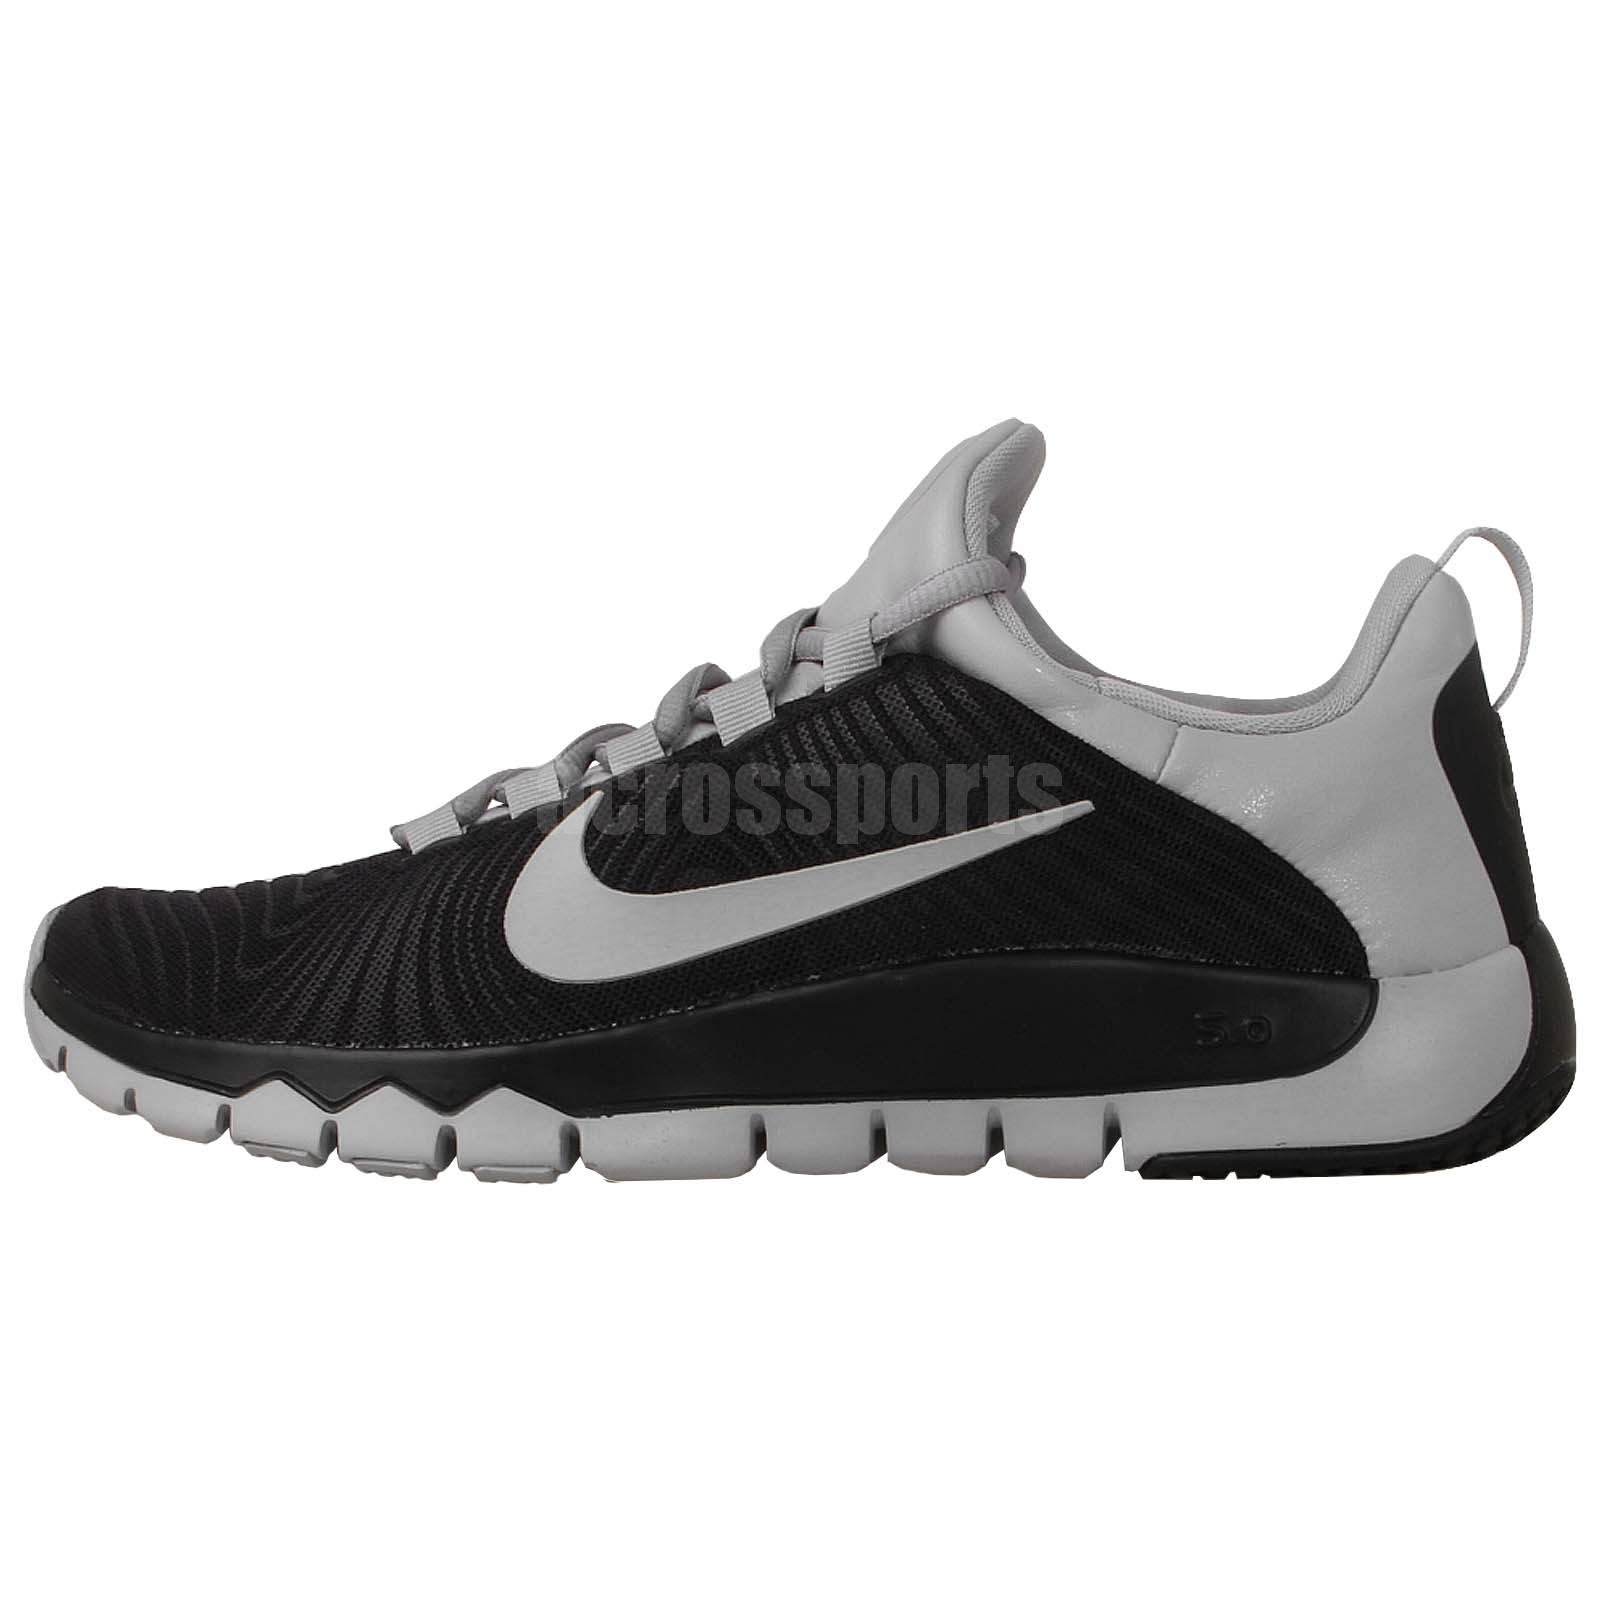 nike free trainer 5 0 v5 run black grey barefoot 2014 mens cross training shoes ebay. Black Bedroom Furniture Sets. Home Design Ideas